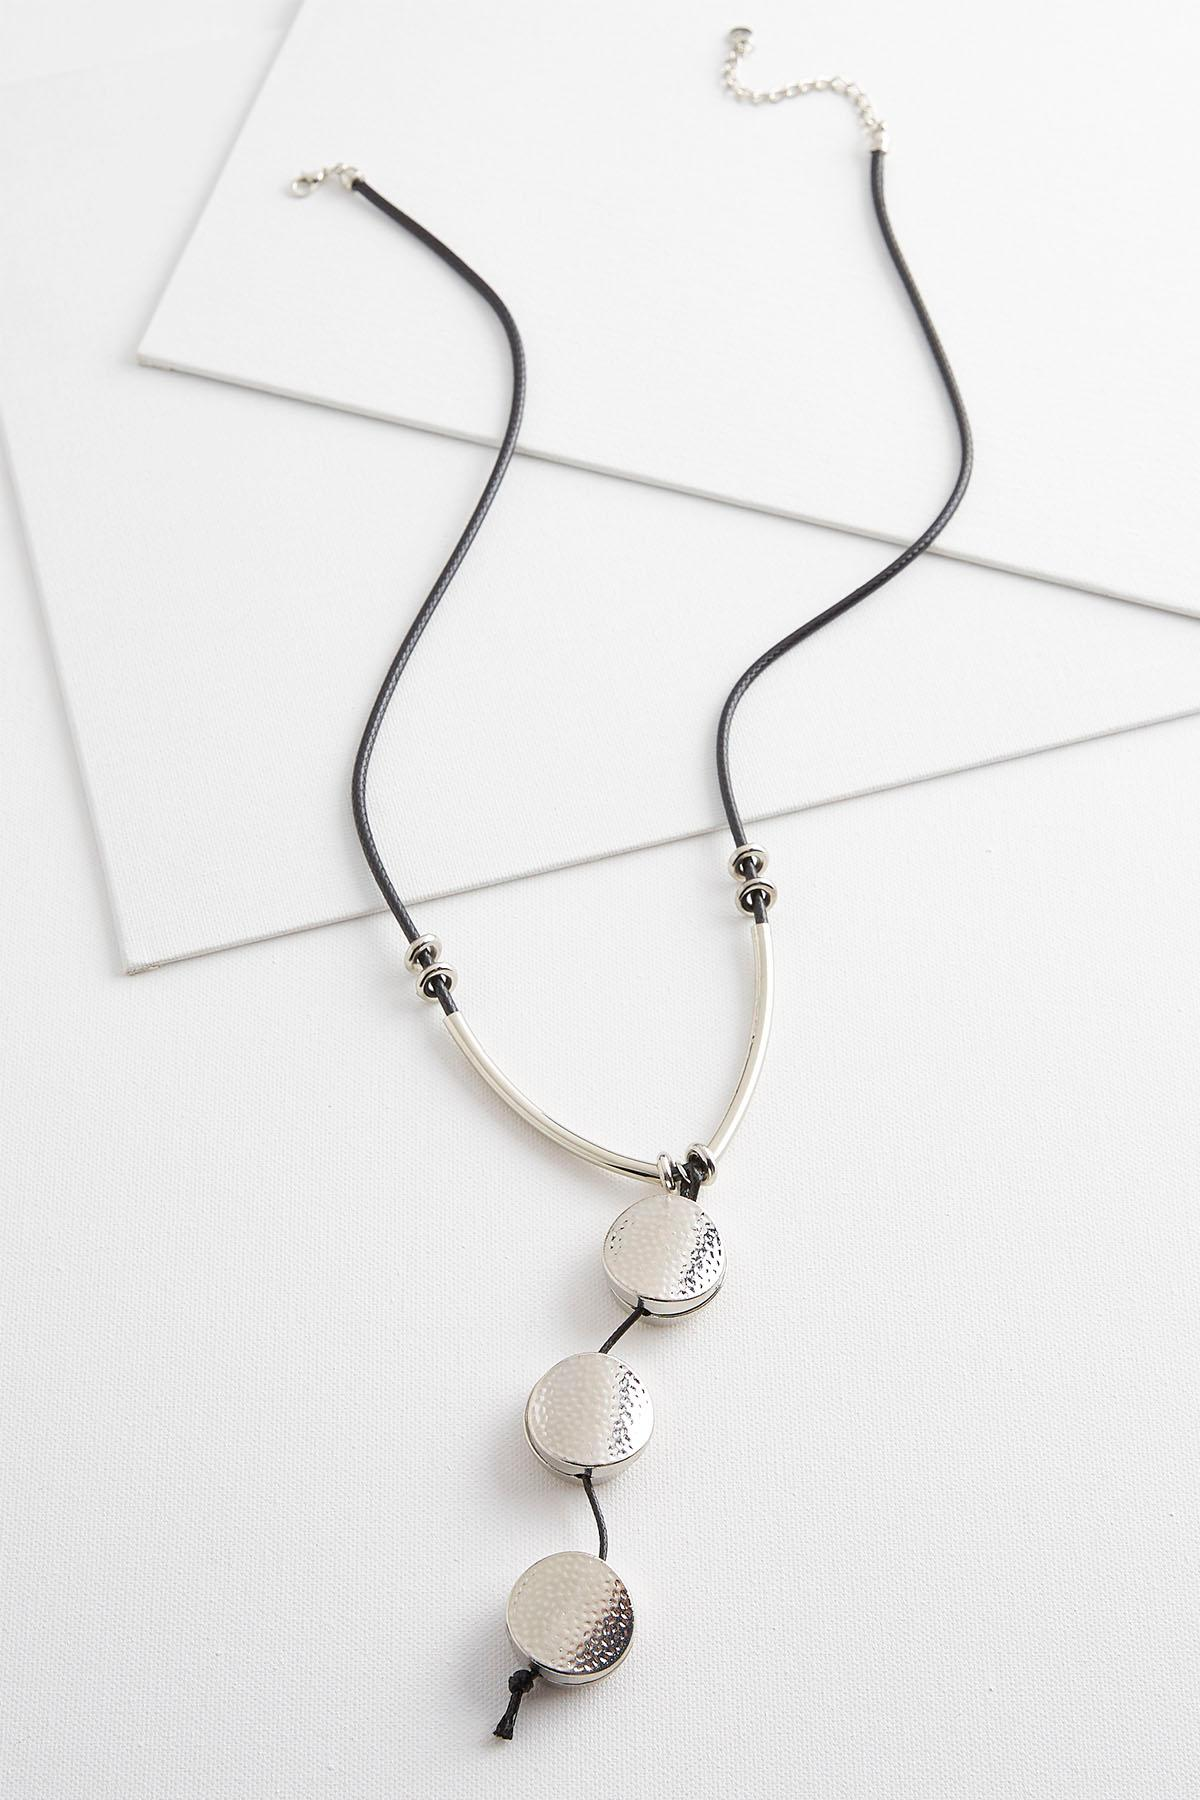 Hammered Bead Cord Necklace